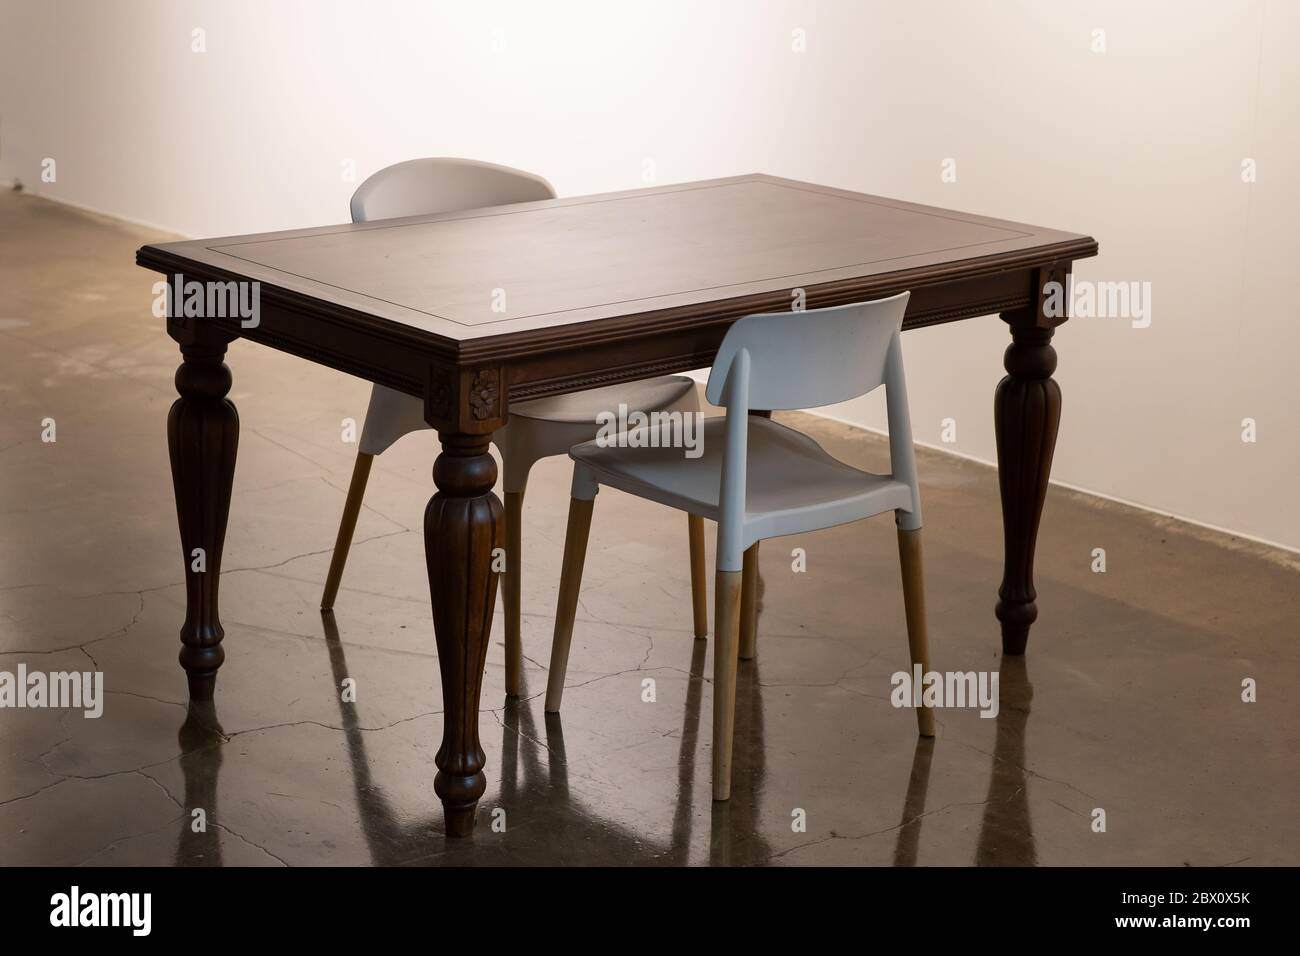 Picture of: Classical Tables And Modern Chairs Stock Photo Alamy